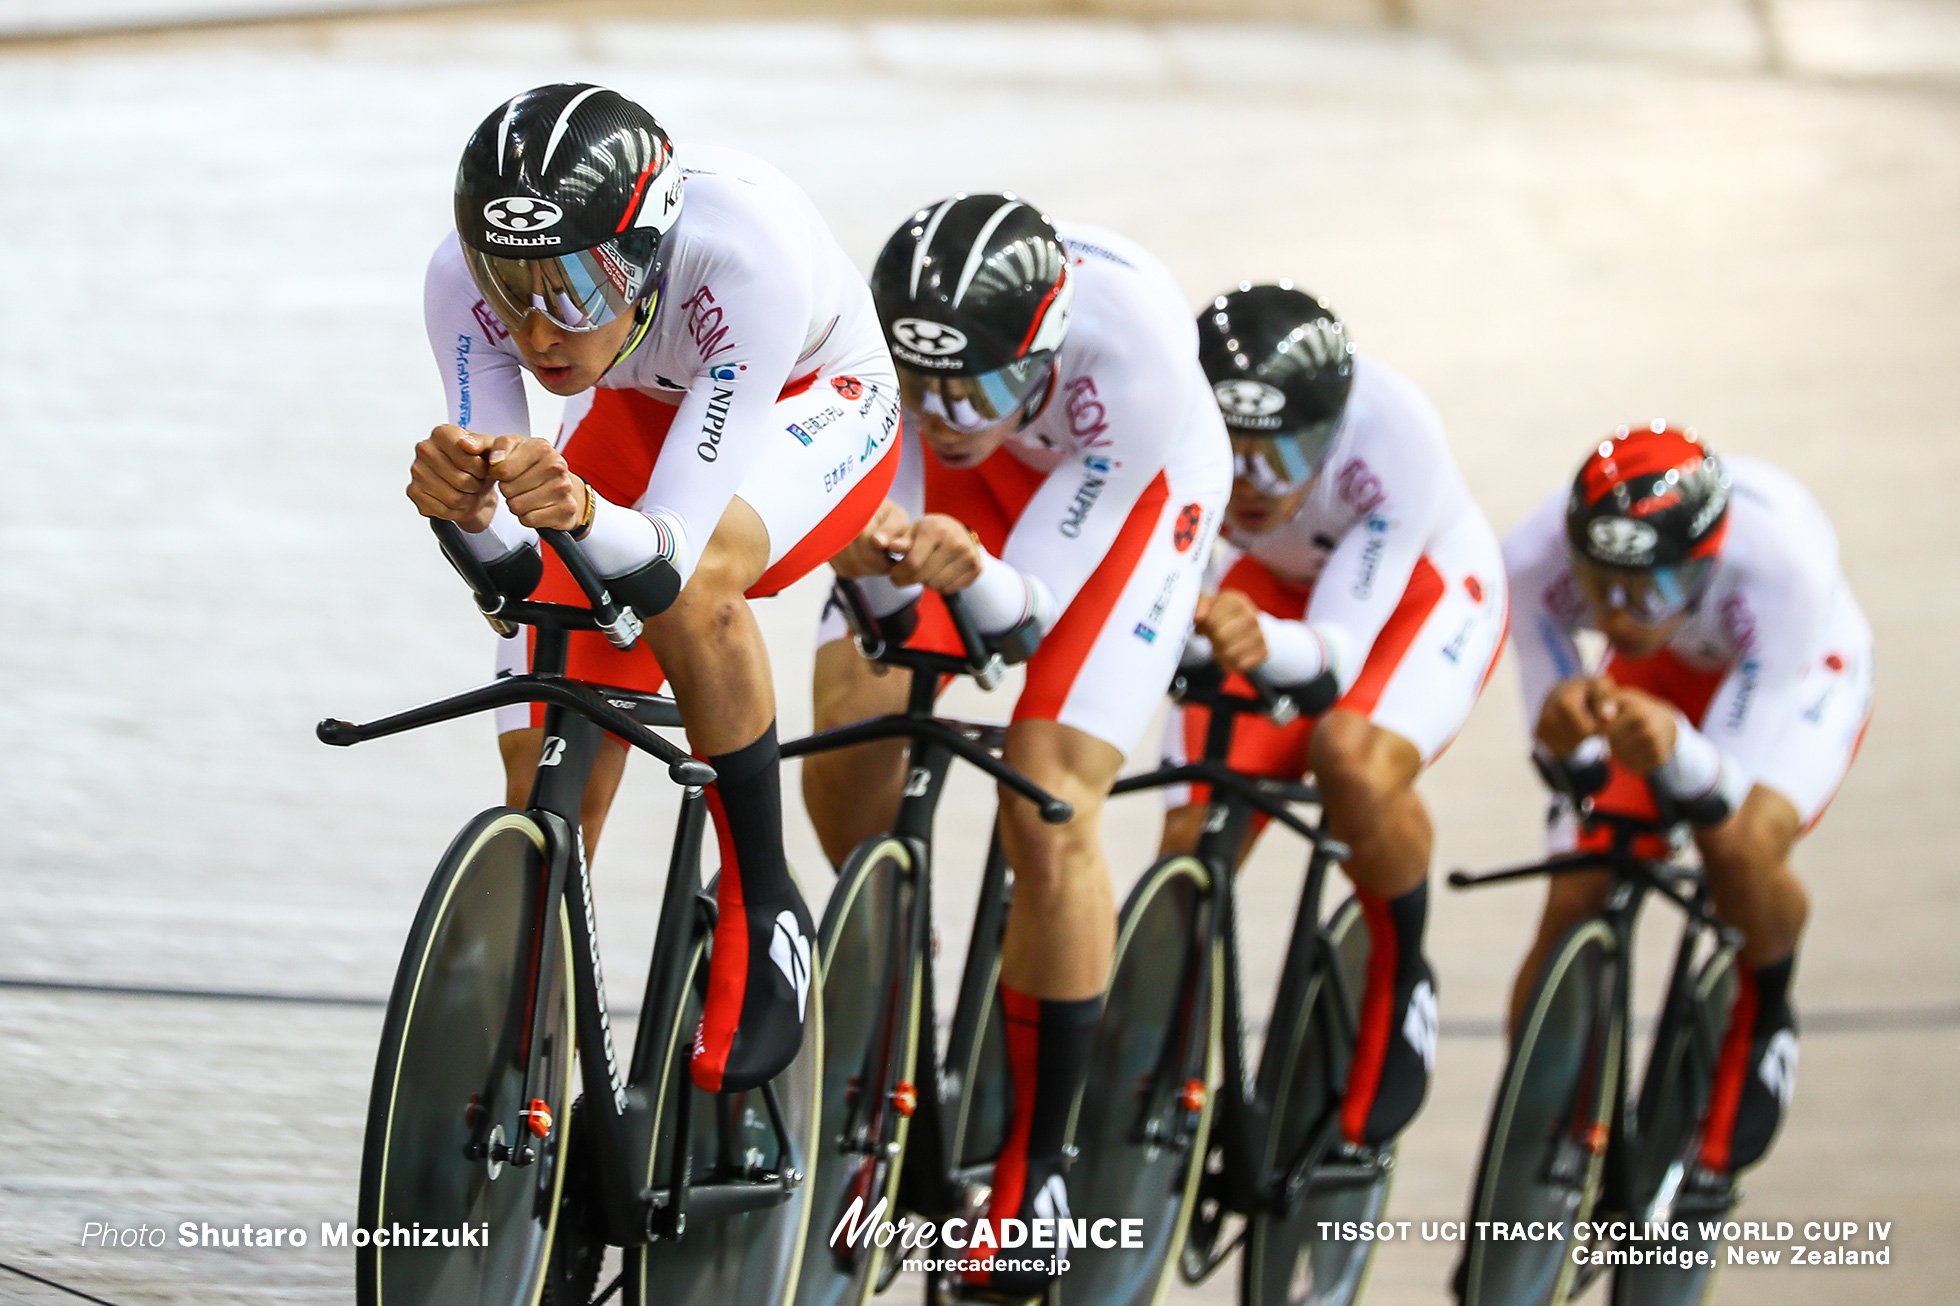 Men's Team Pursuit / TISSOT UCI TRACK CYCLING WORLD CUP IV, Cambridge, New Zealand